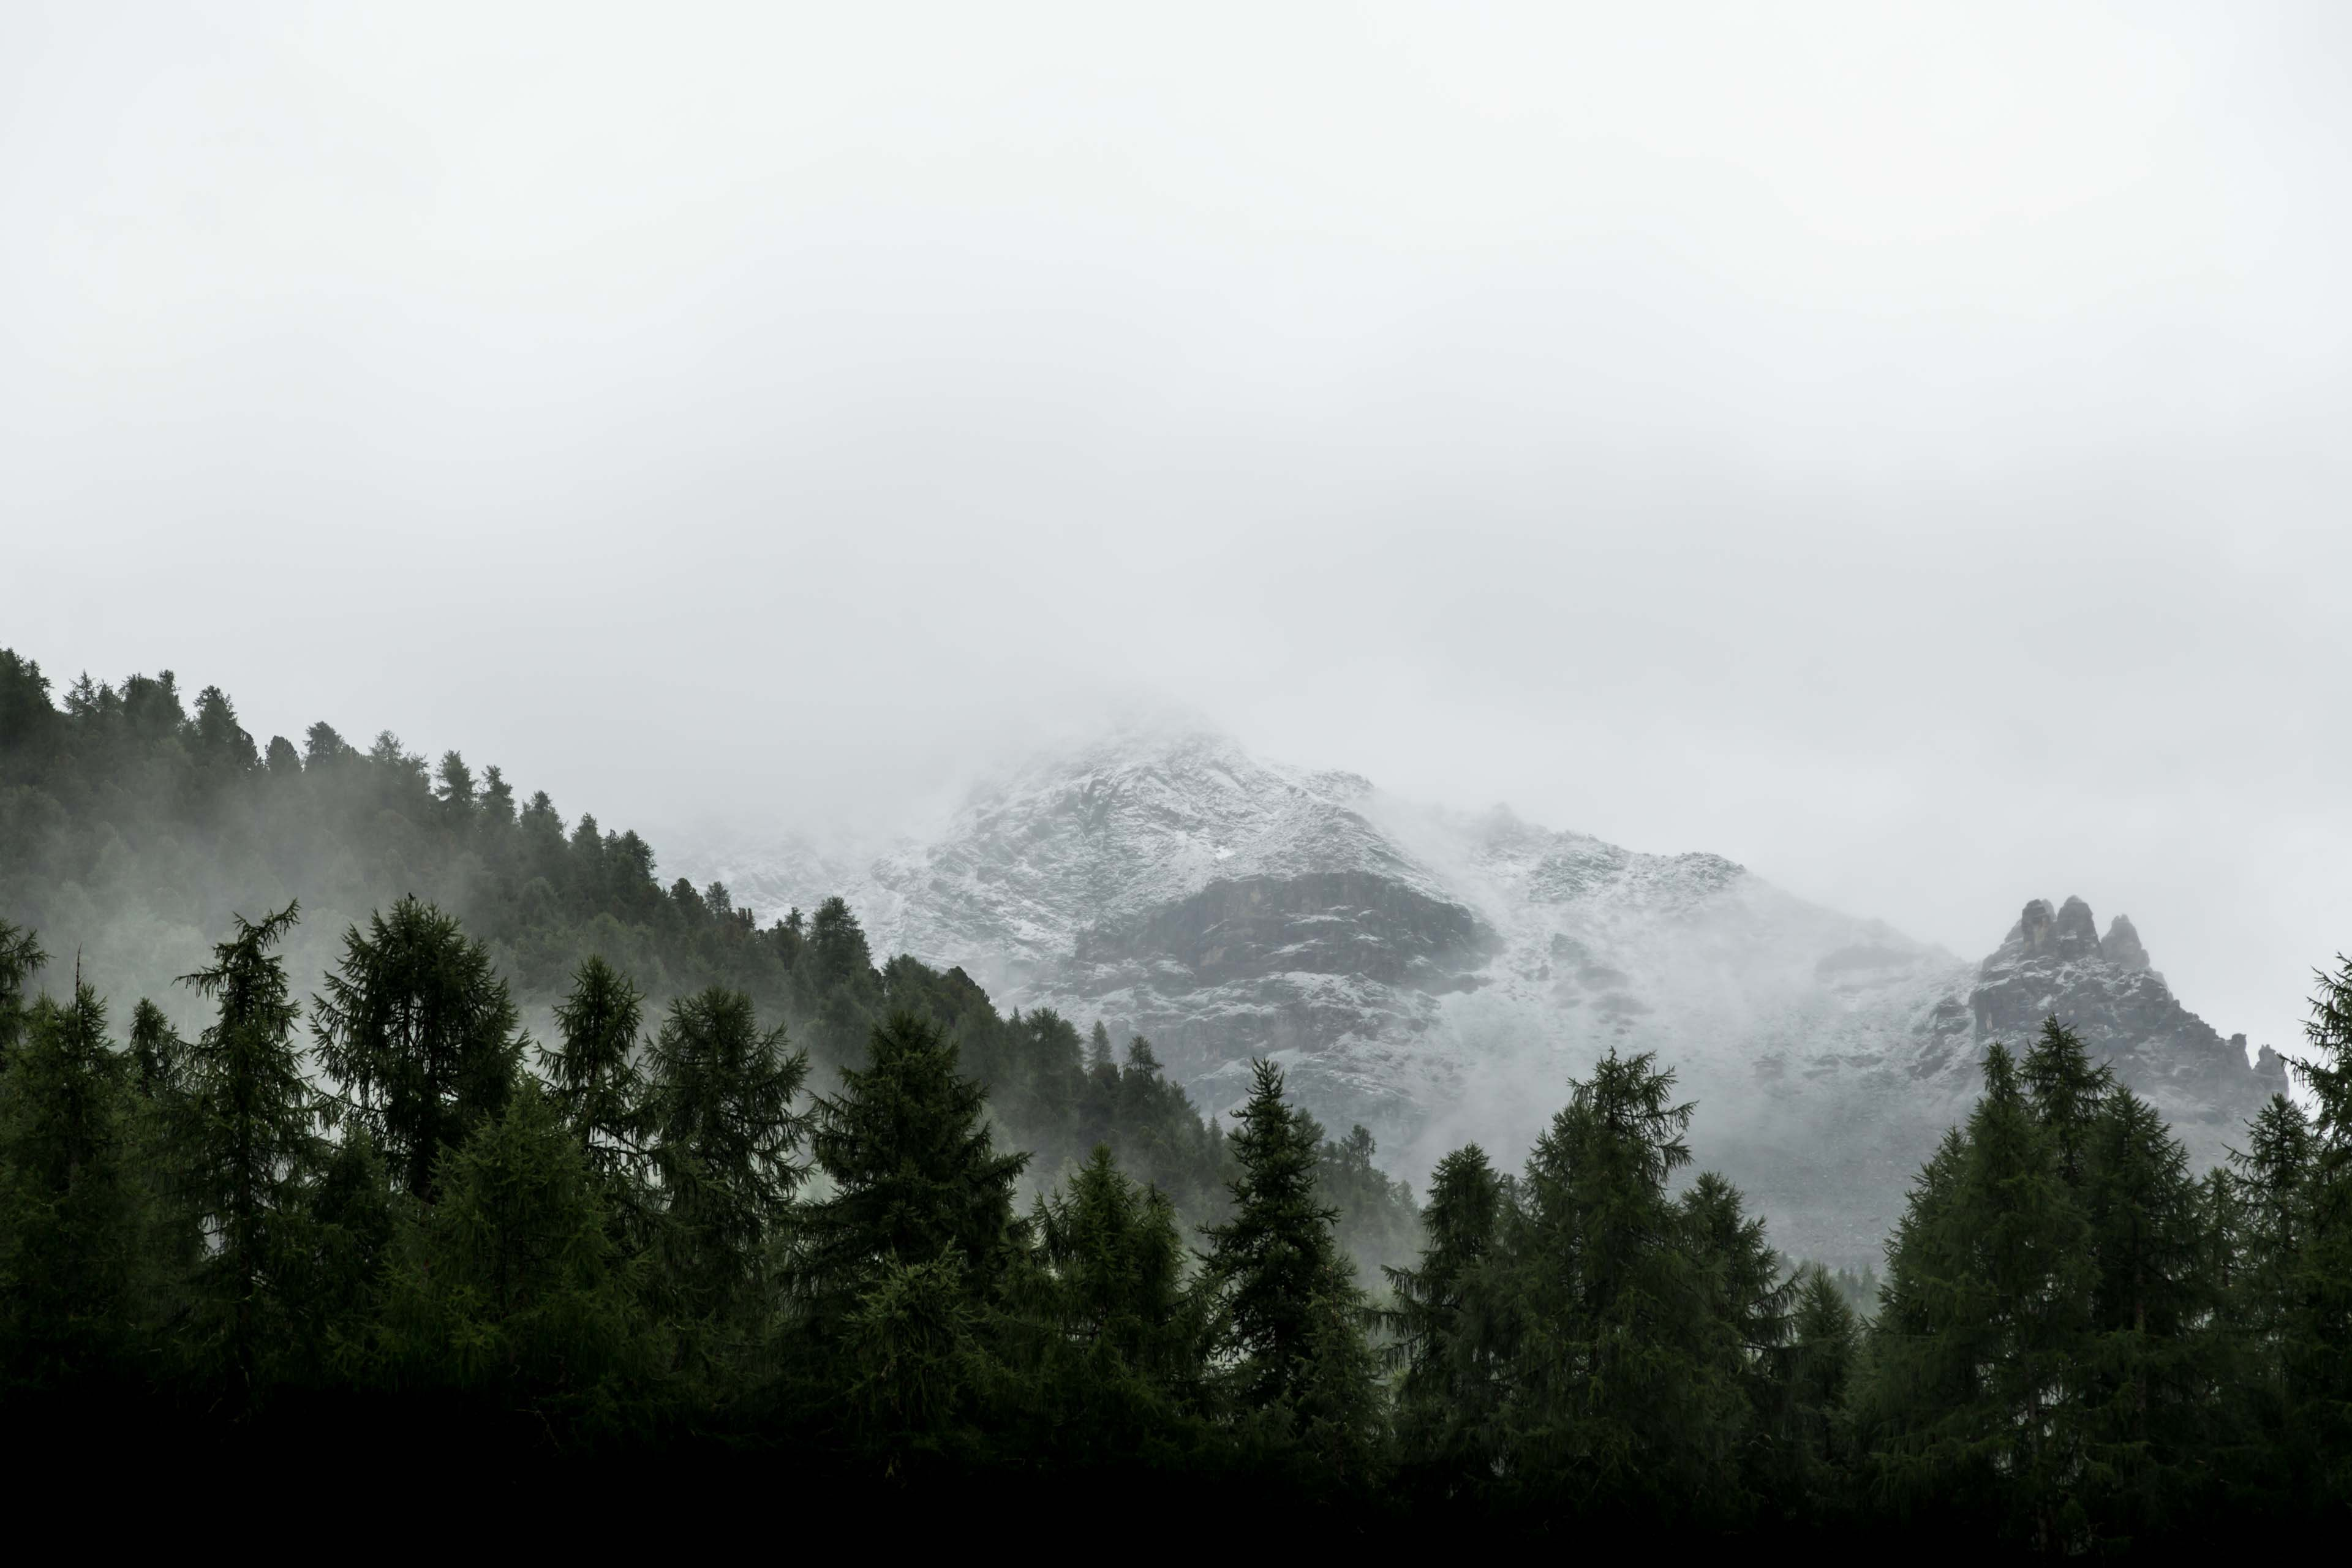 Mist covering the snowy peaks and trees near the mountain village of Pontresina, Grisons, Switzerland